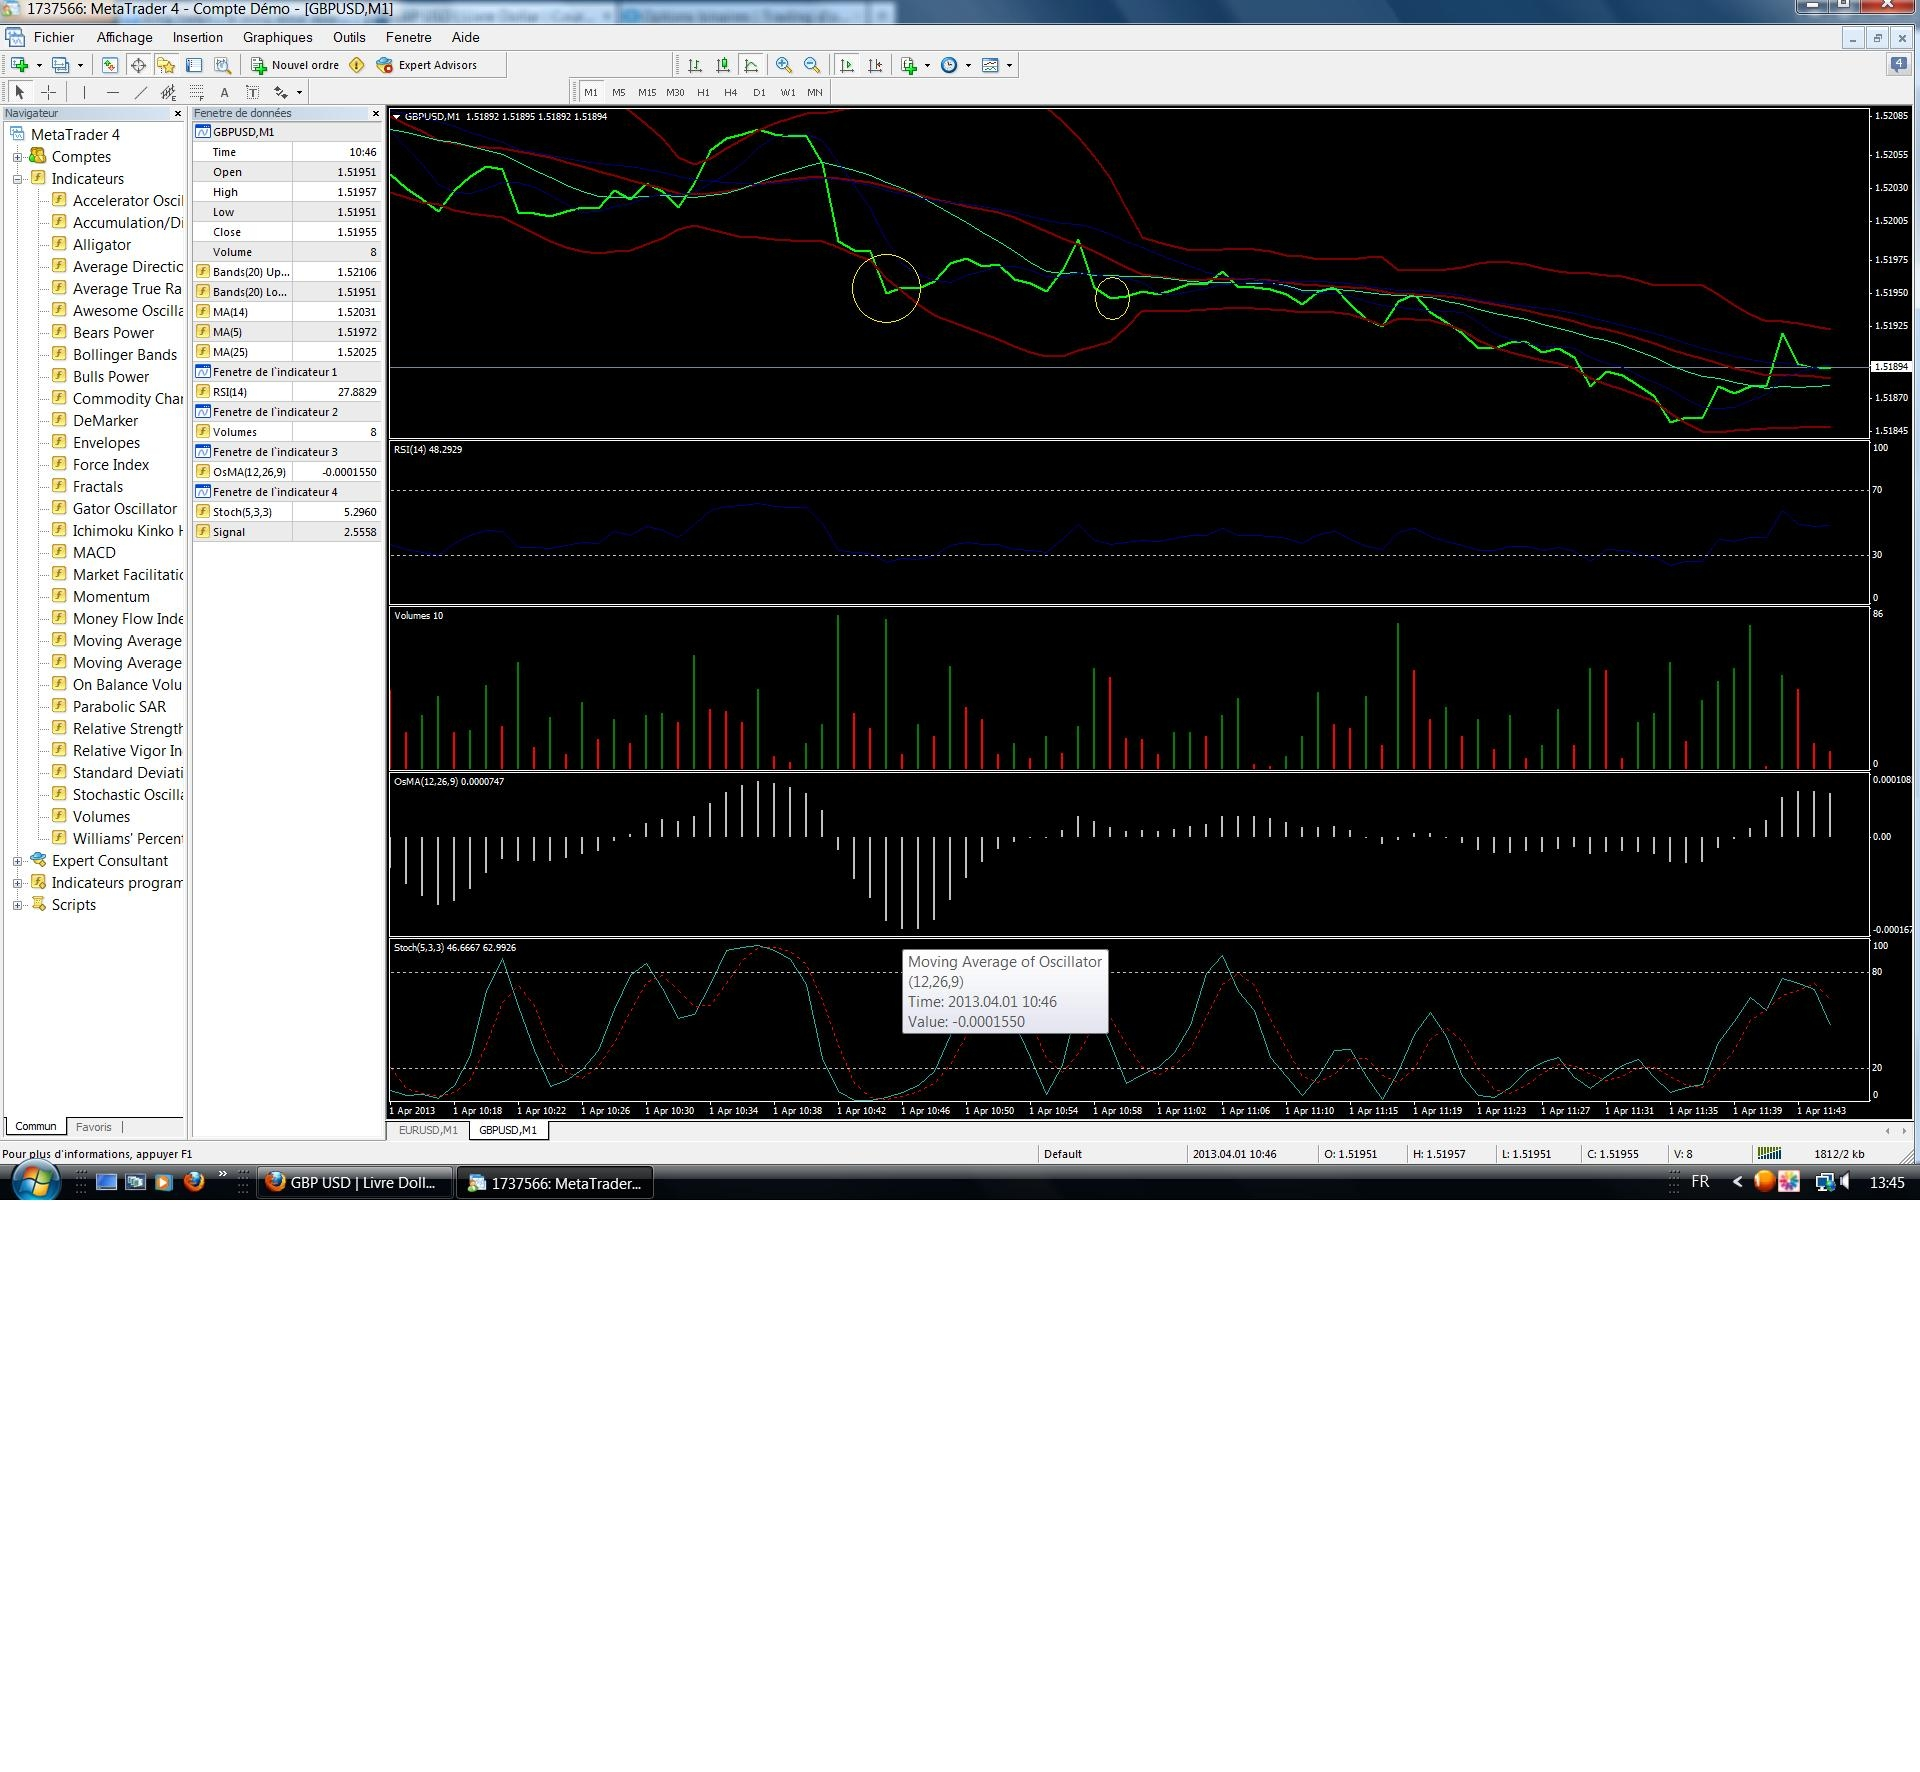 Stochastic Star Forex Binary Options Trading Strategy | Forex MT4 Indicators